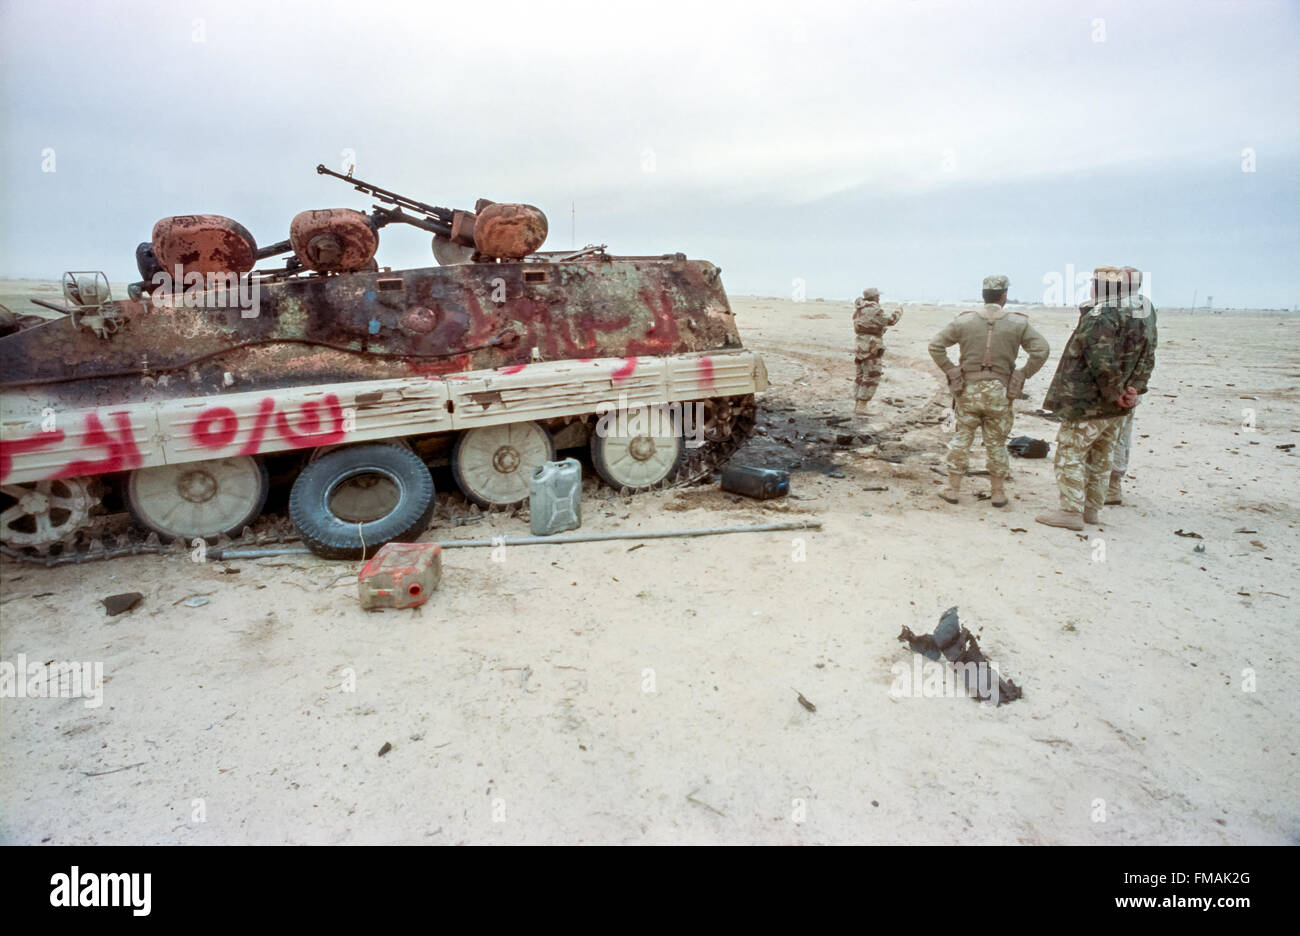 Qatar soldiers examine destroyed Iraqi armored personnel carriers destroyed by U.S Forces during the Battle of Khafji - Stock Image